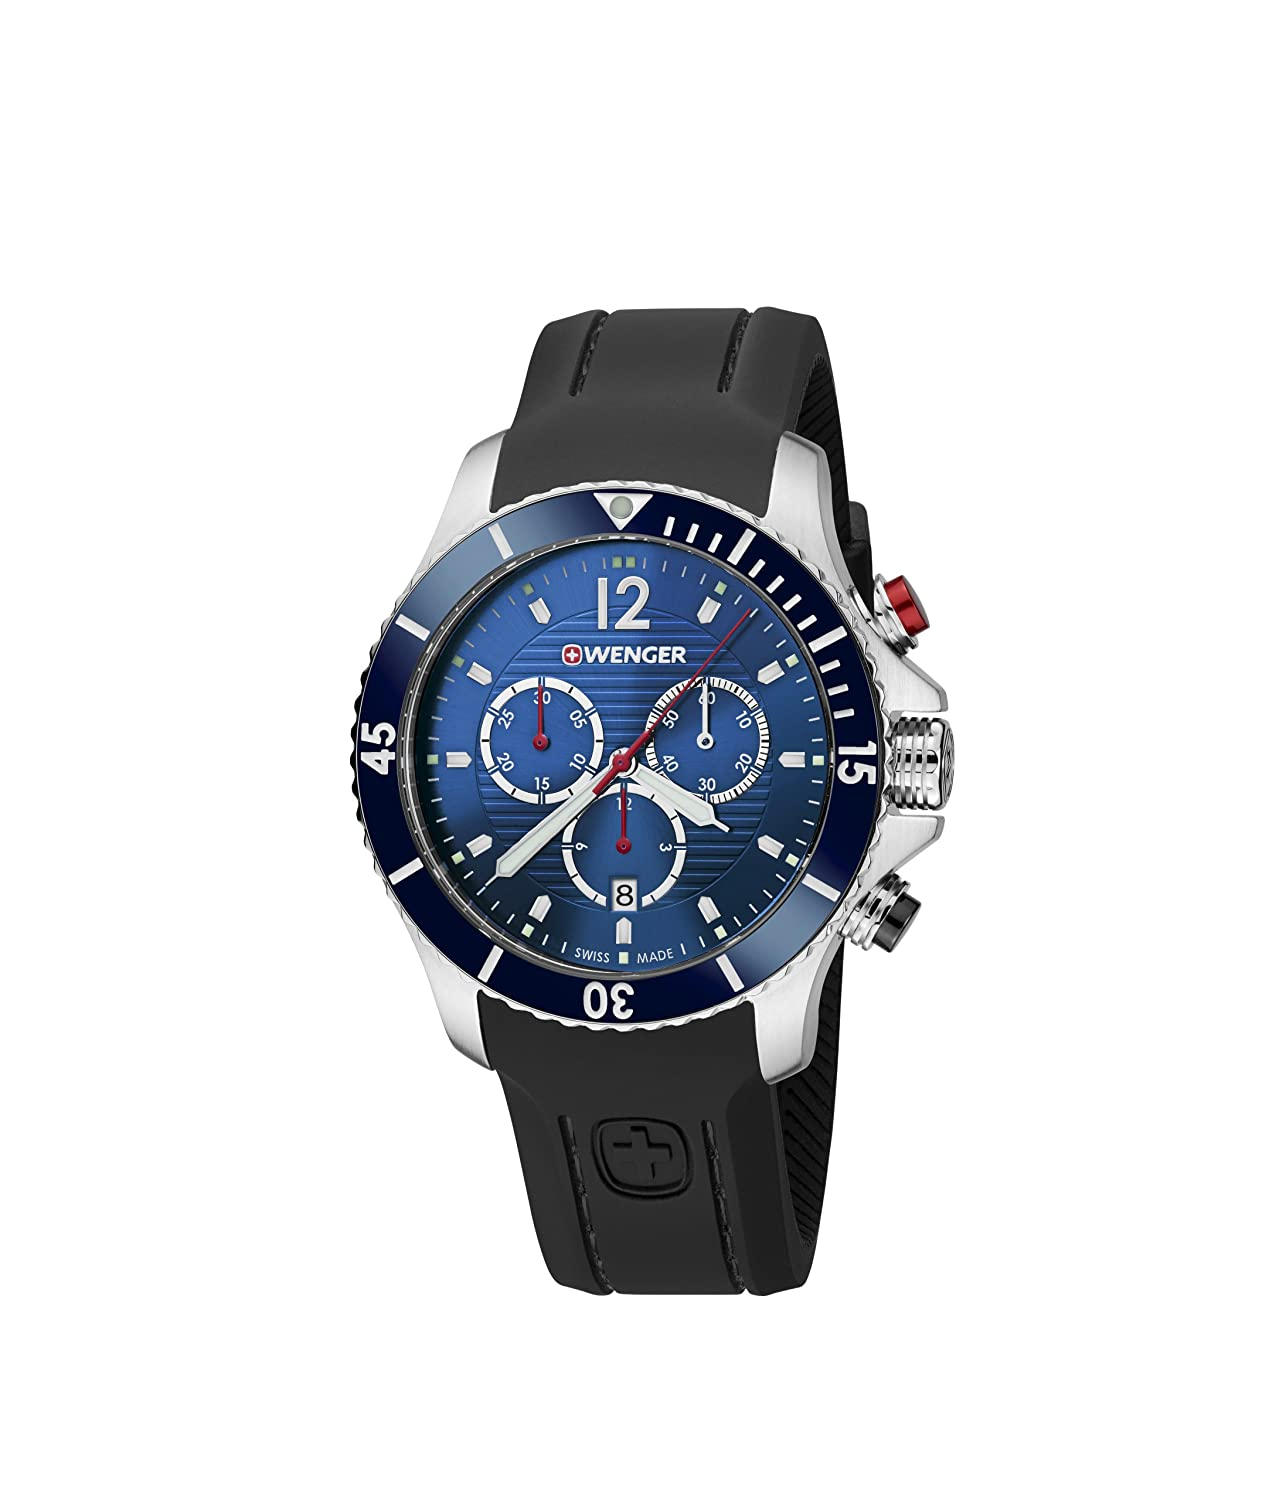 WEGNER Unisex-Armbanduhr 01.0643.110 WENGER SEAFORCE CHRONO Analog Quarz Leder 01.0643.110 WENGER SEAFORCE CHRONO